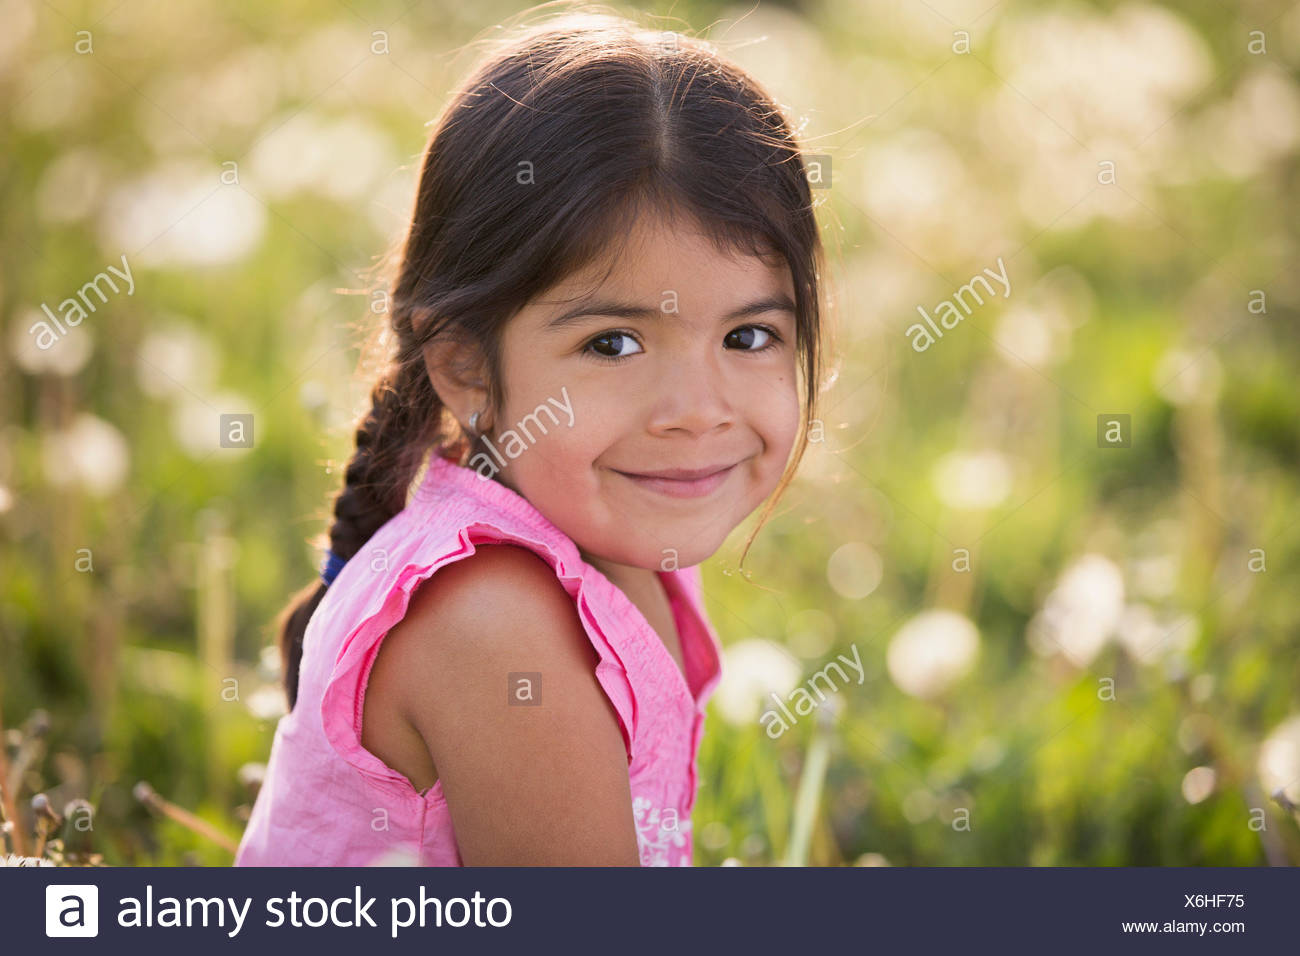 A young girl with brown hair and braids, in a wild flower meadow. - Stock Image